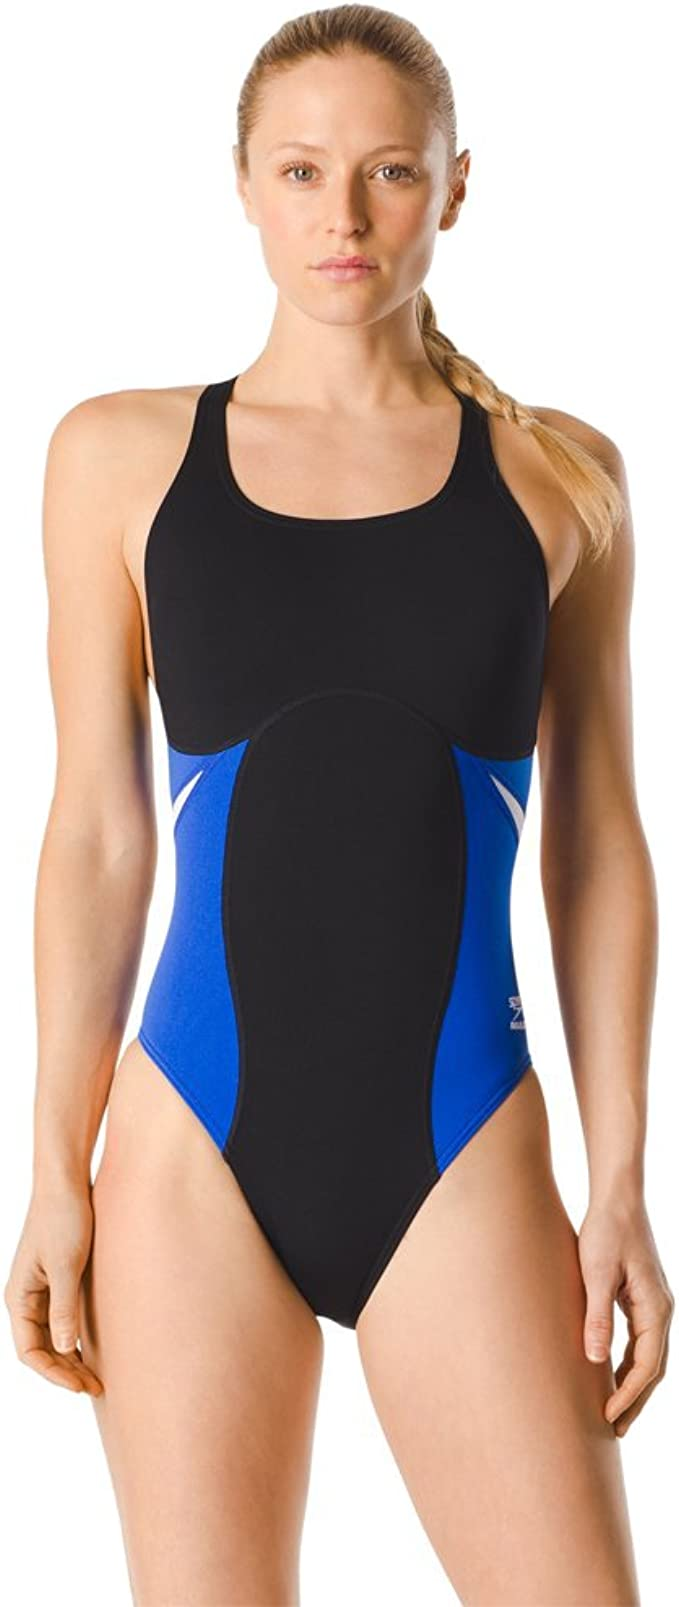 Amazon.com: Speedo Spark Splice Super Pro - Traje de baño ...